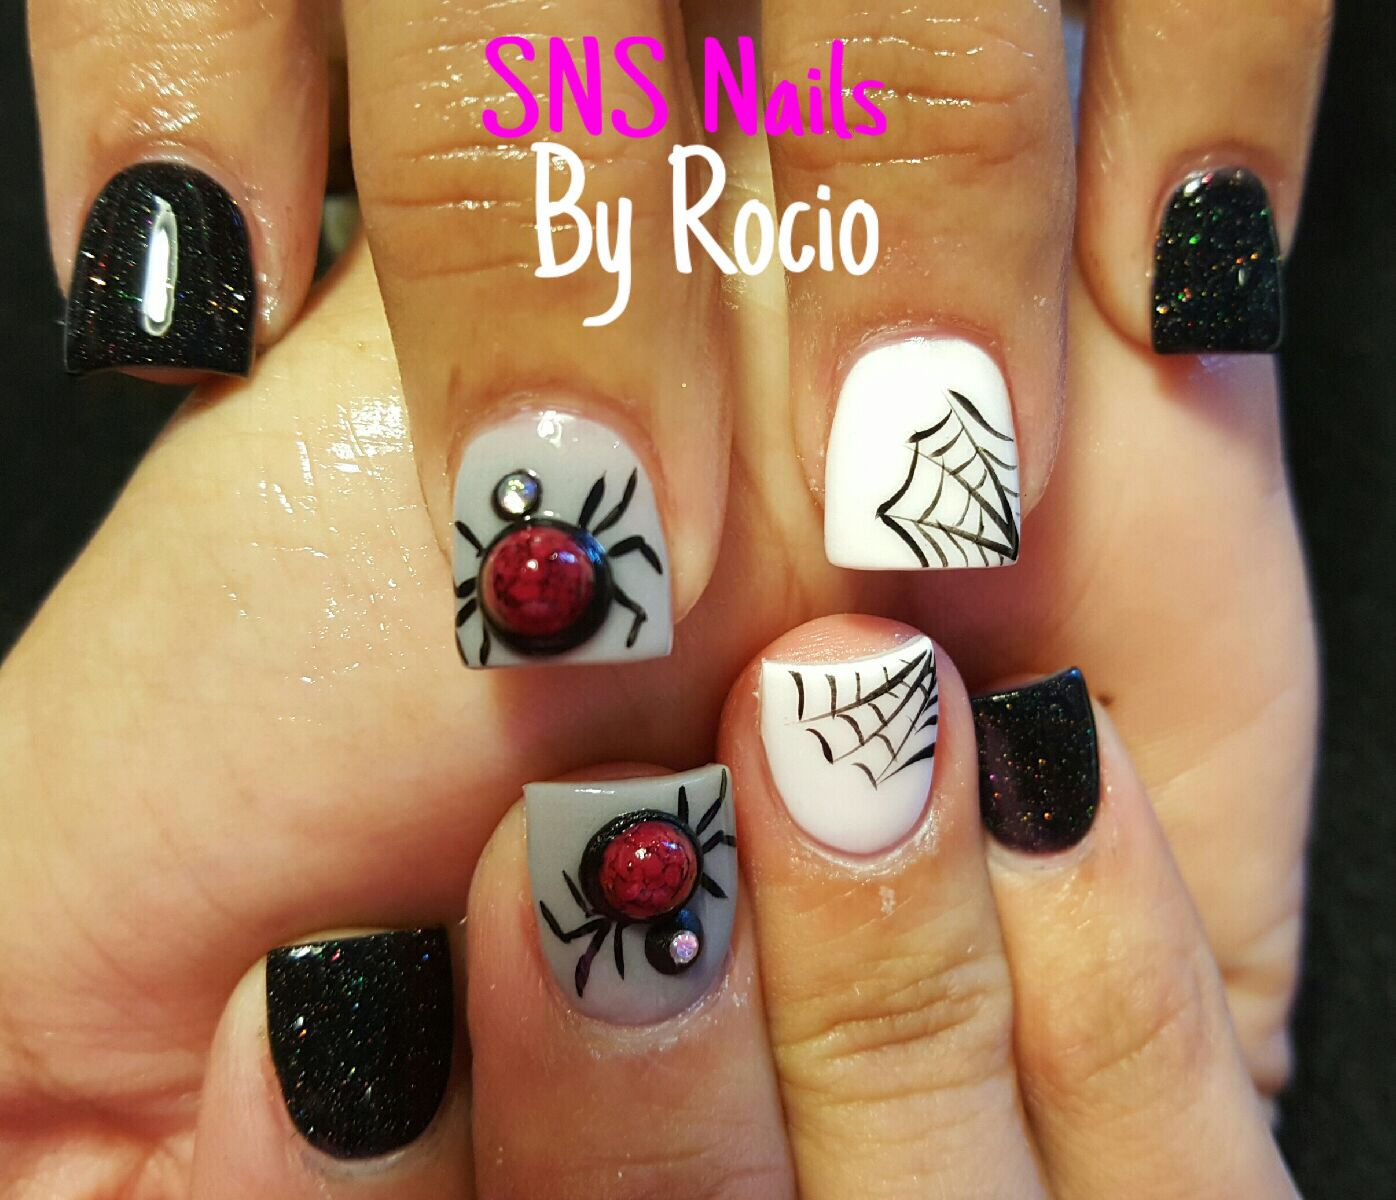 SNS nails with 3D Halloween designs ! | Sns nails, Sns dip ...